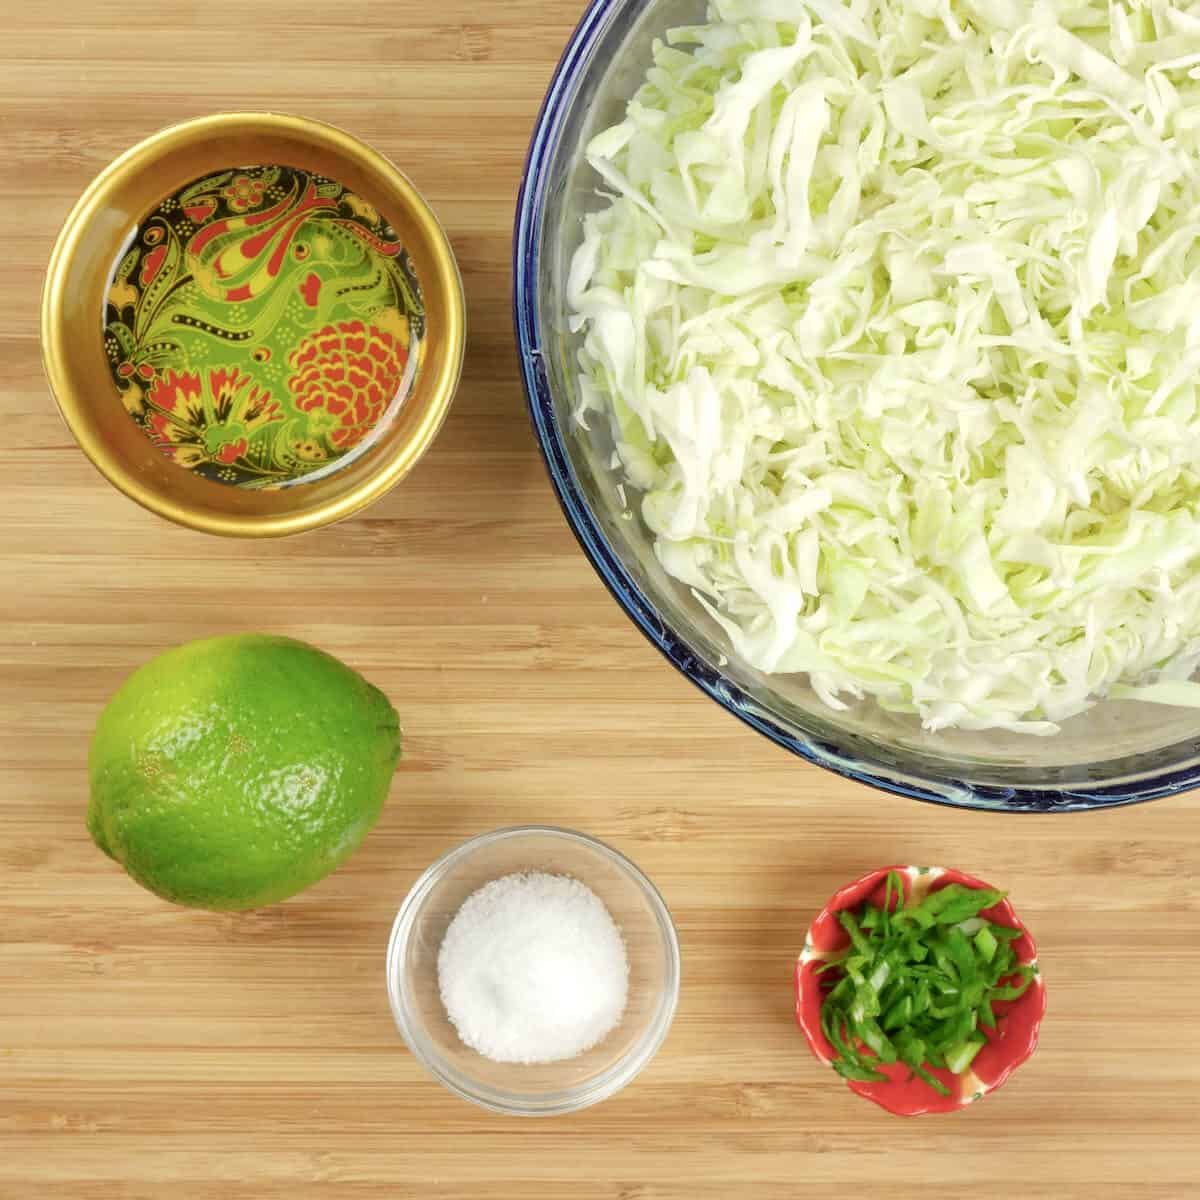 The quick cabbage slaw ingredients gathered and ready for mixing.